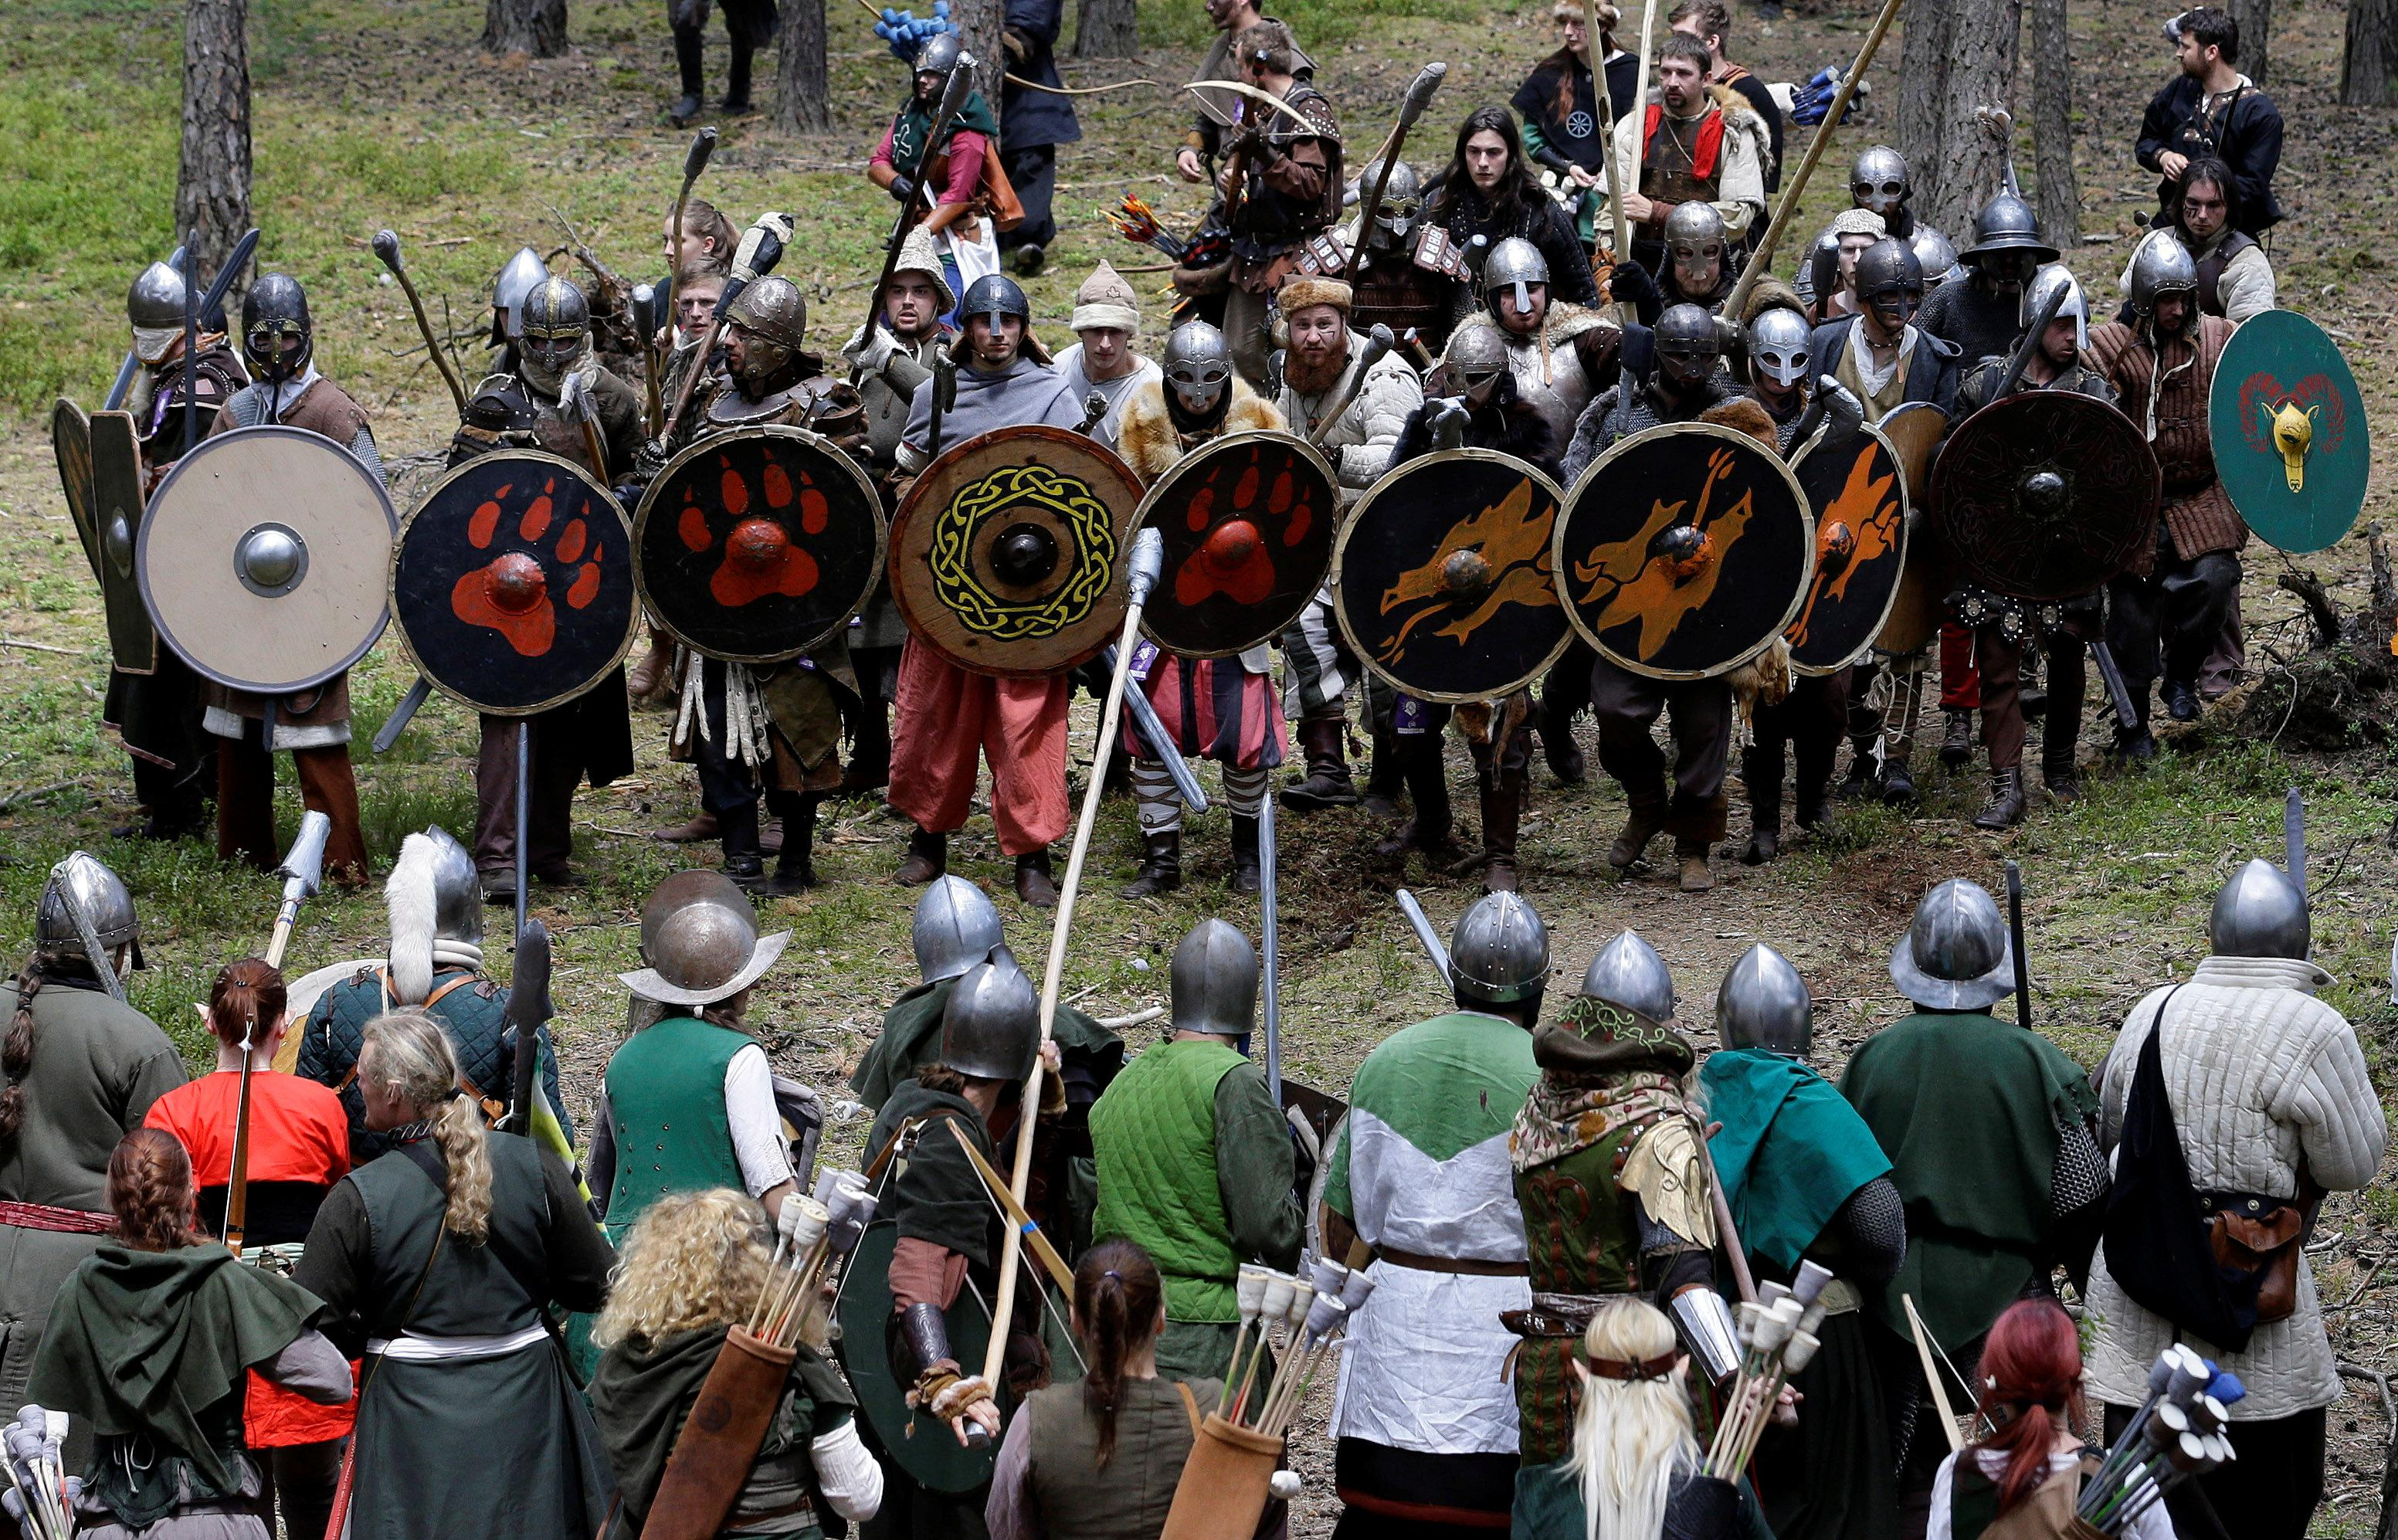 Participants dressed as characters such as elves, dwarves, goblins and orcs from J.R.R. Tolkien's novel